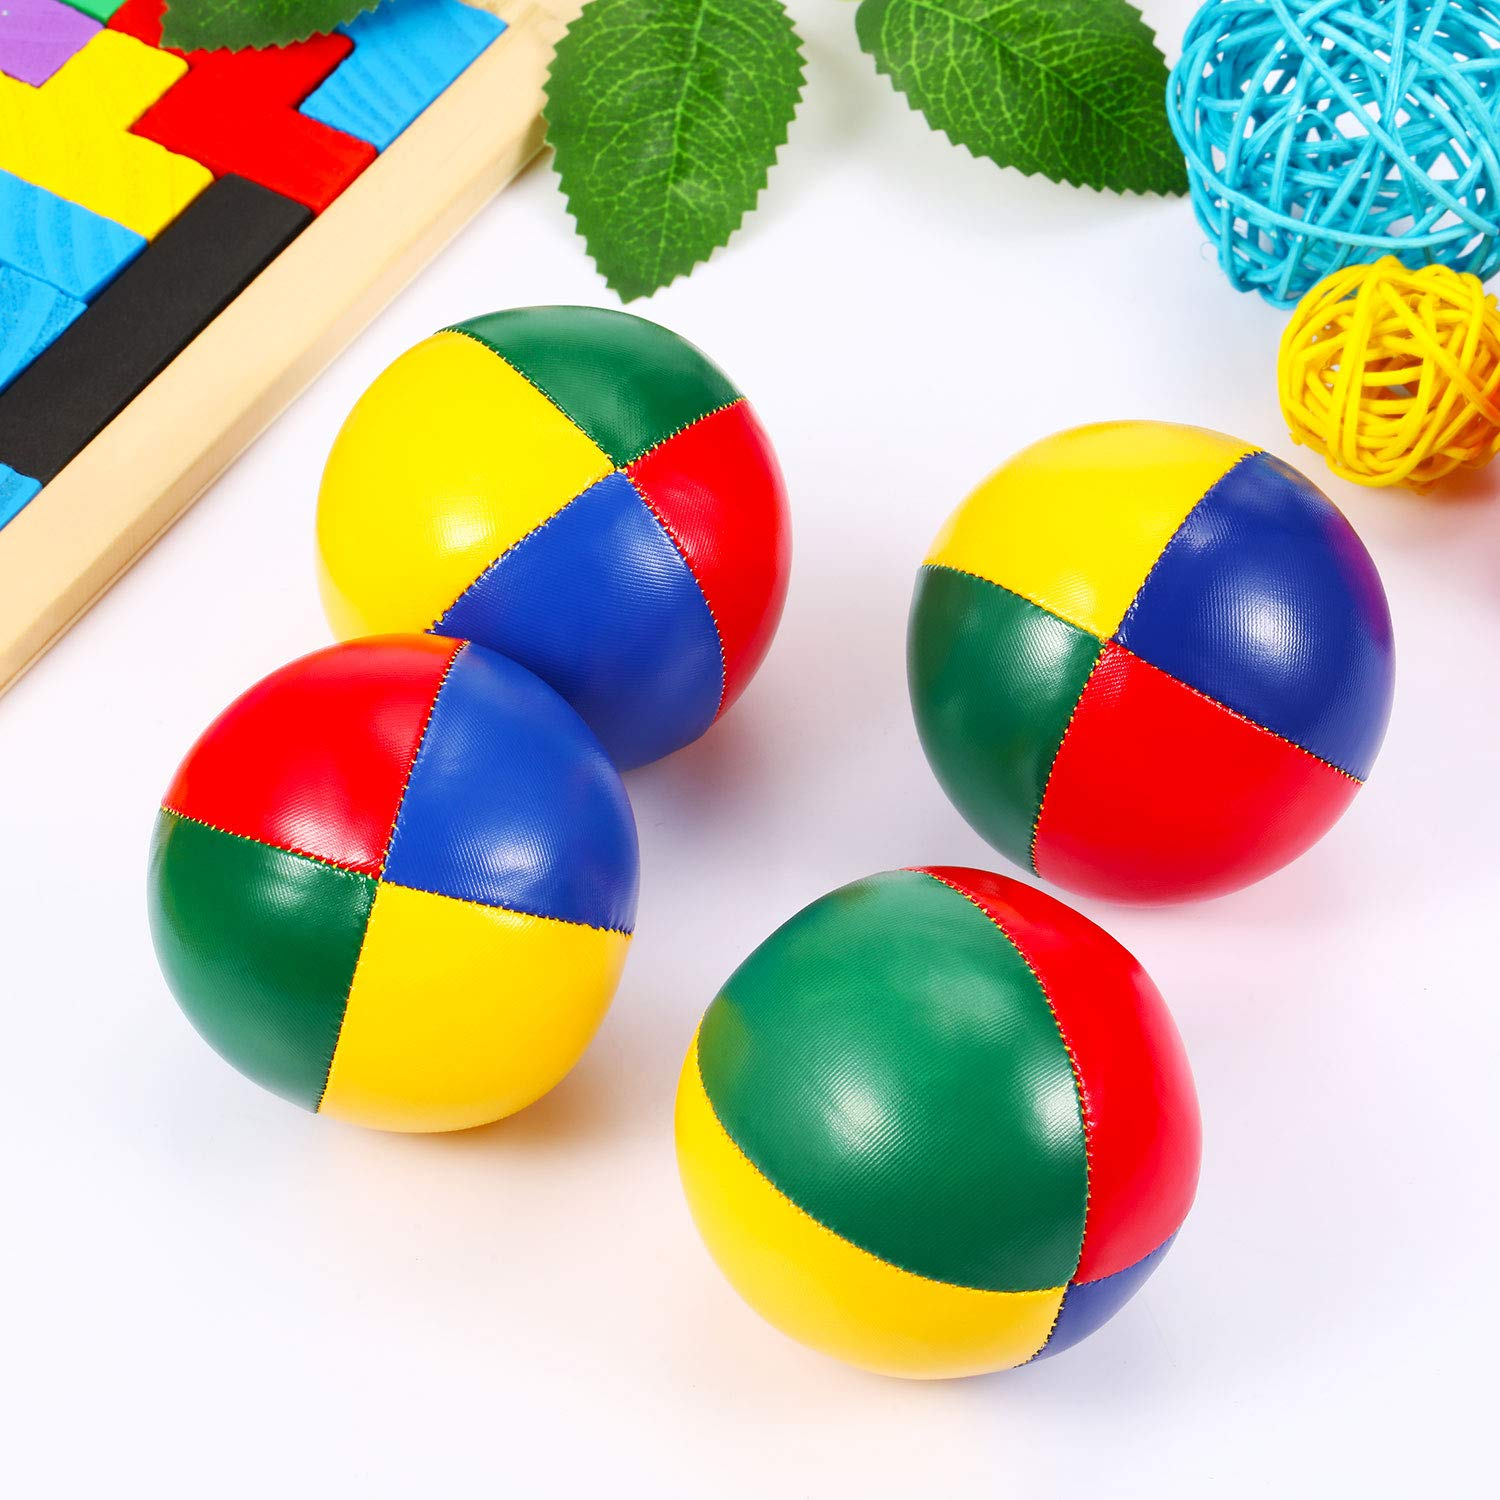 4 Pieces Juggling Balls for Beginners Soft Easy Juggle Balls Multicolor Durable Juggle Balls for Boys Girls Adults Mini Juggling Balls Kit